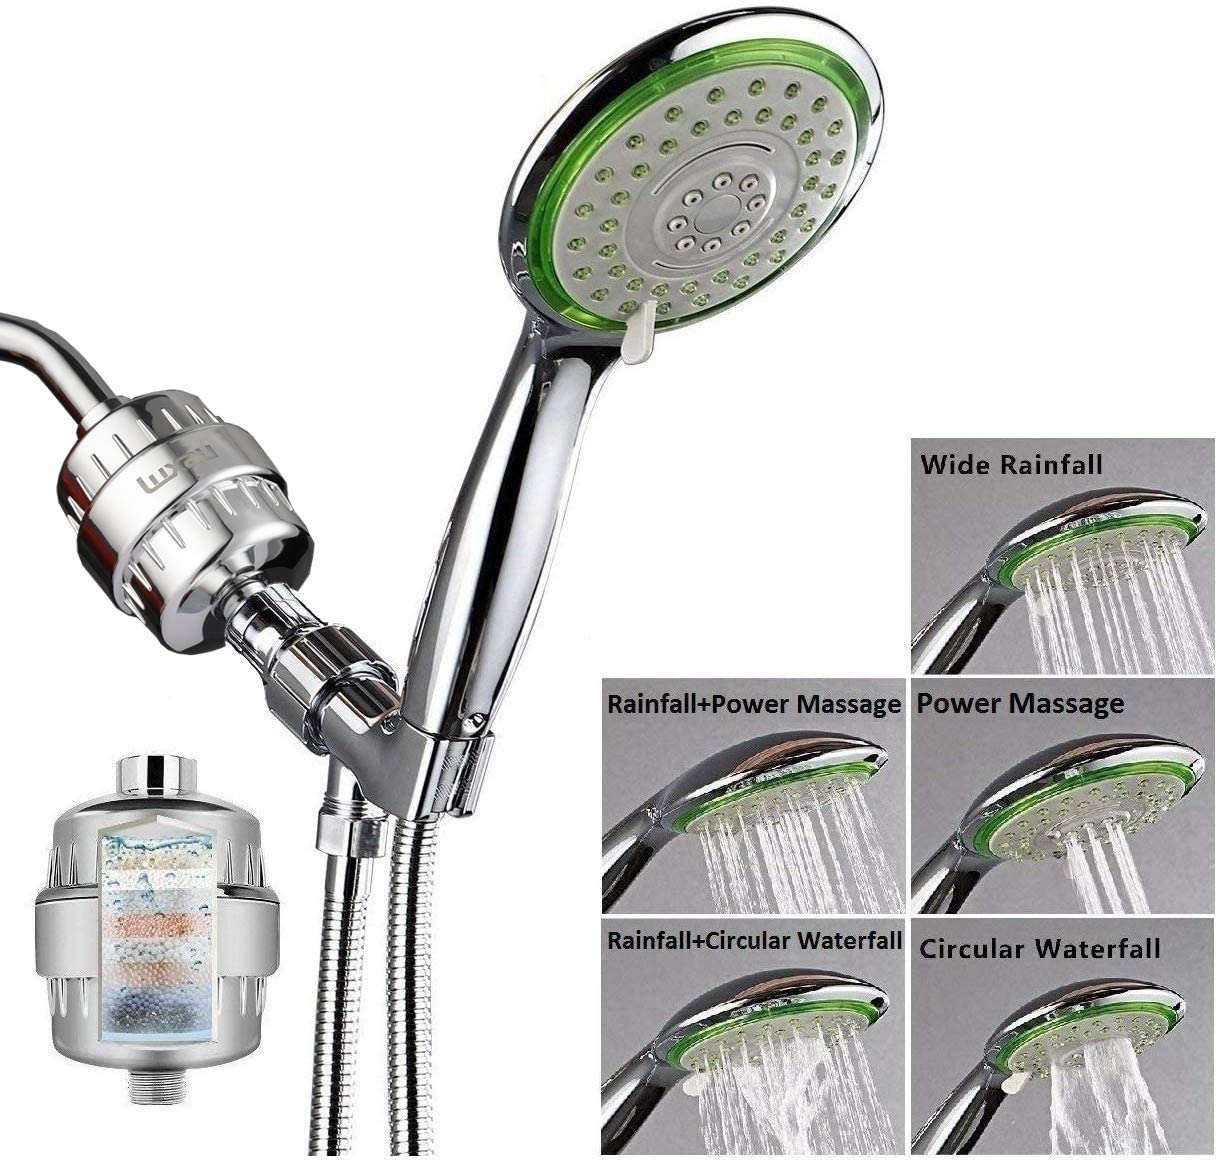 black rose ZCSMTZ shower head household shower faucet shower set filter nozzle nozzle shower nozzle nine-layer filtration and purification shower resin material frosting process fine water outlet